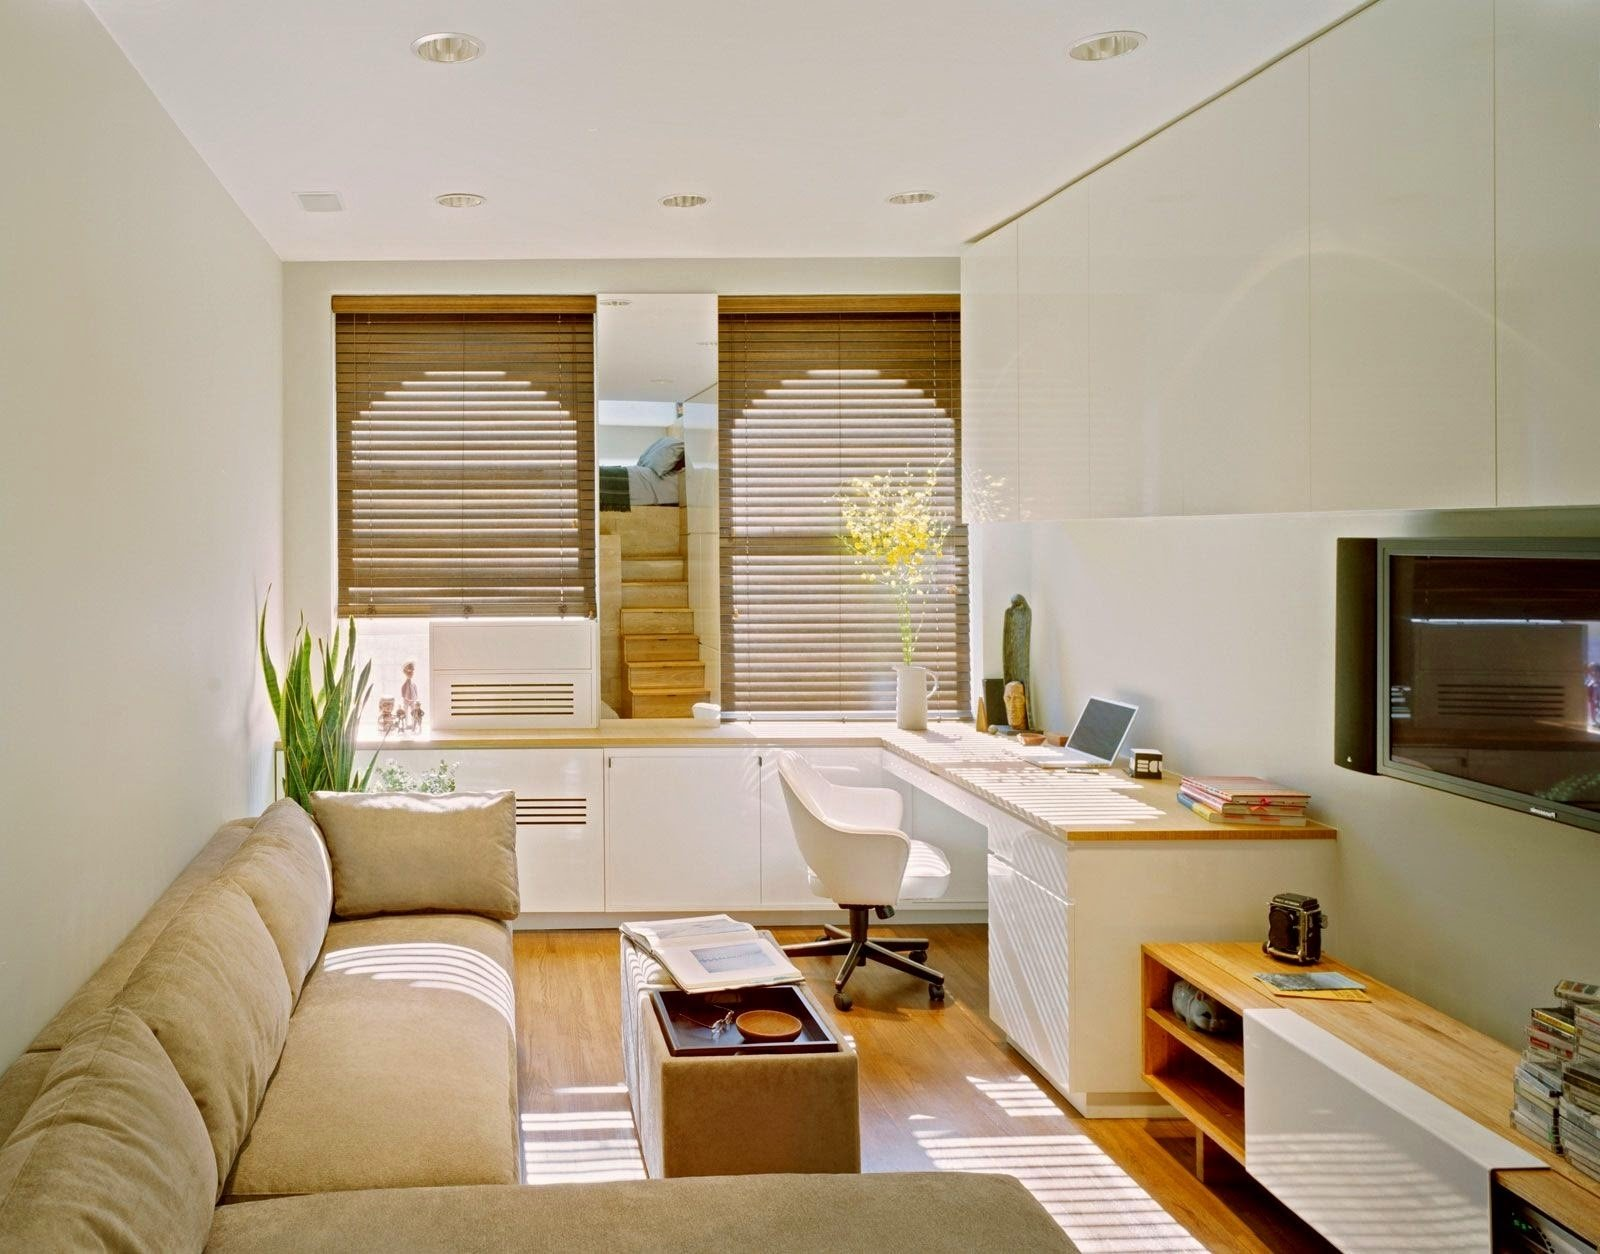 10 Gorgeous Interior Design Ideas For Small Spaces small spaces interior design ideas interior living room small spaces